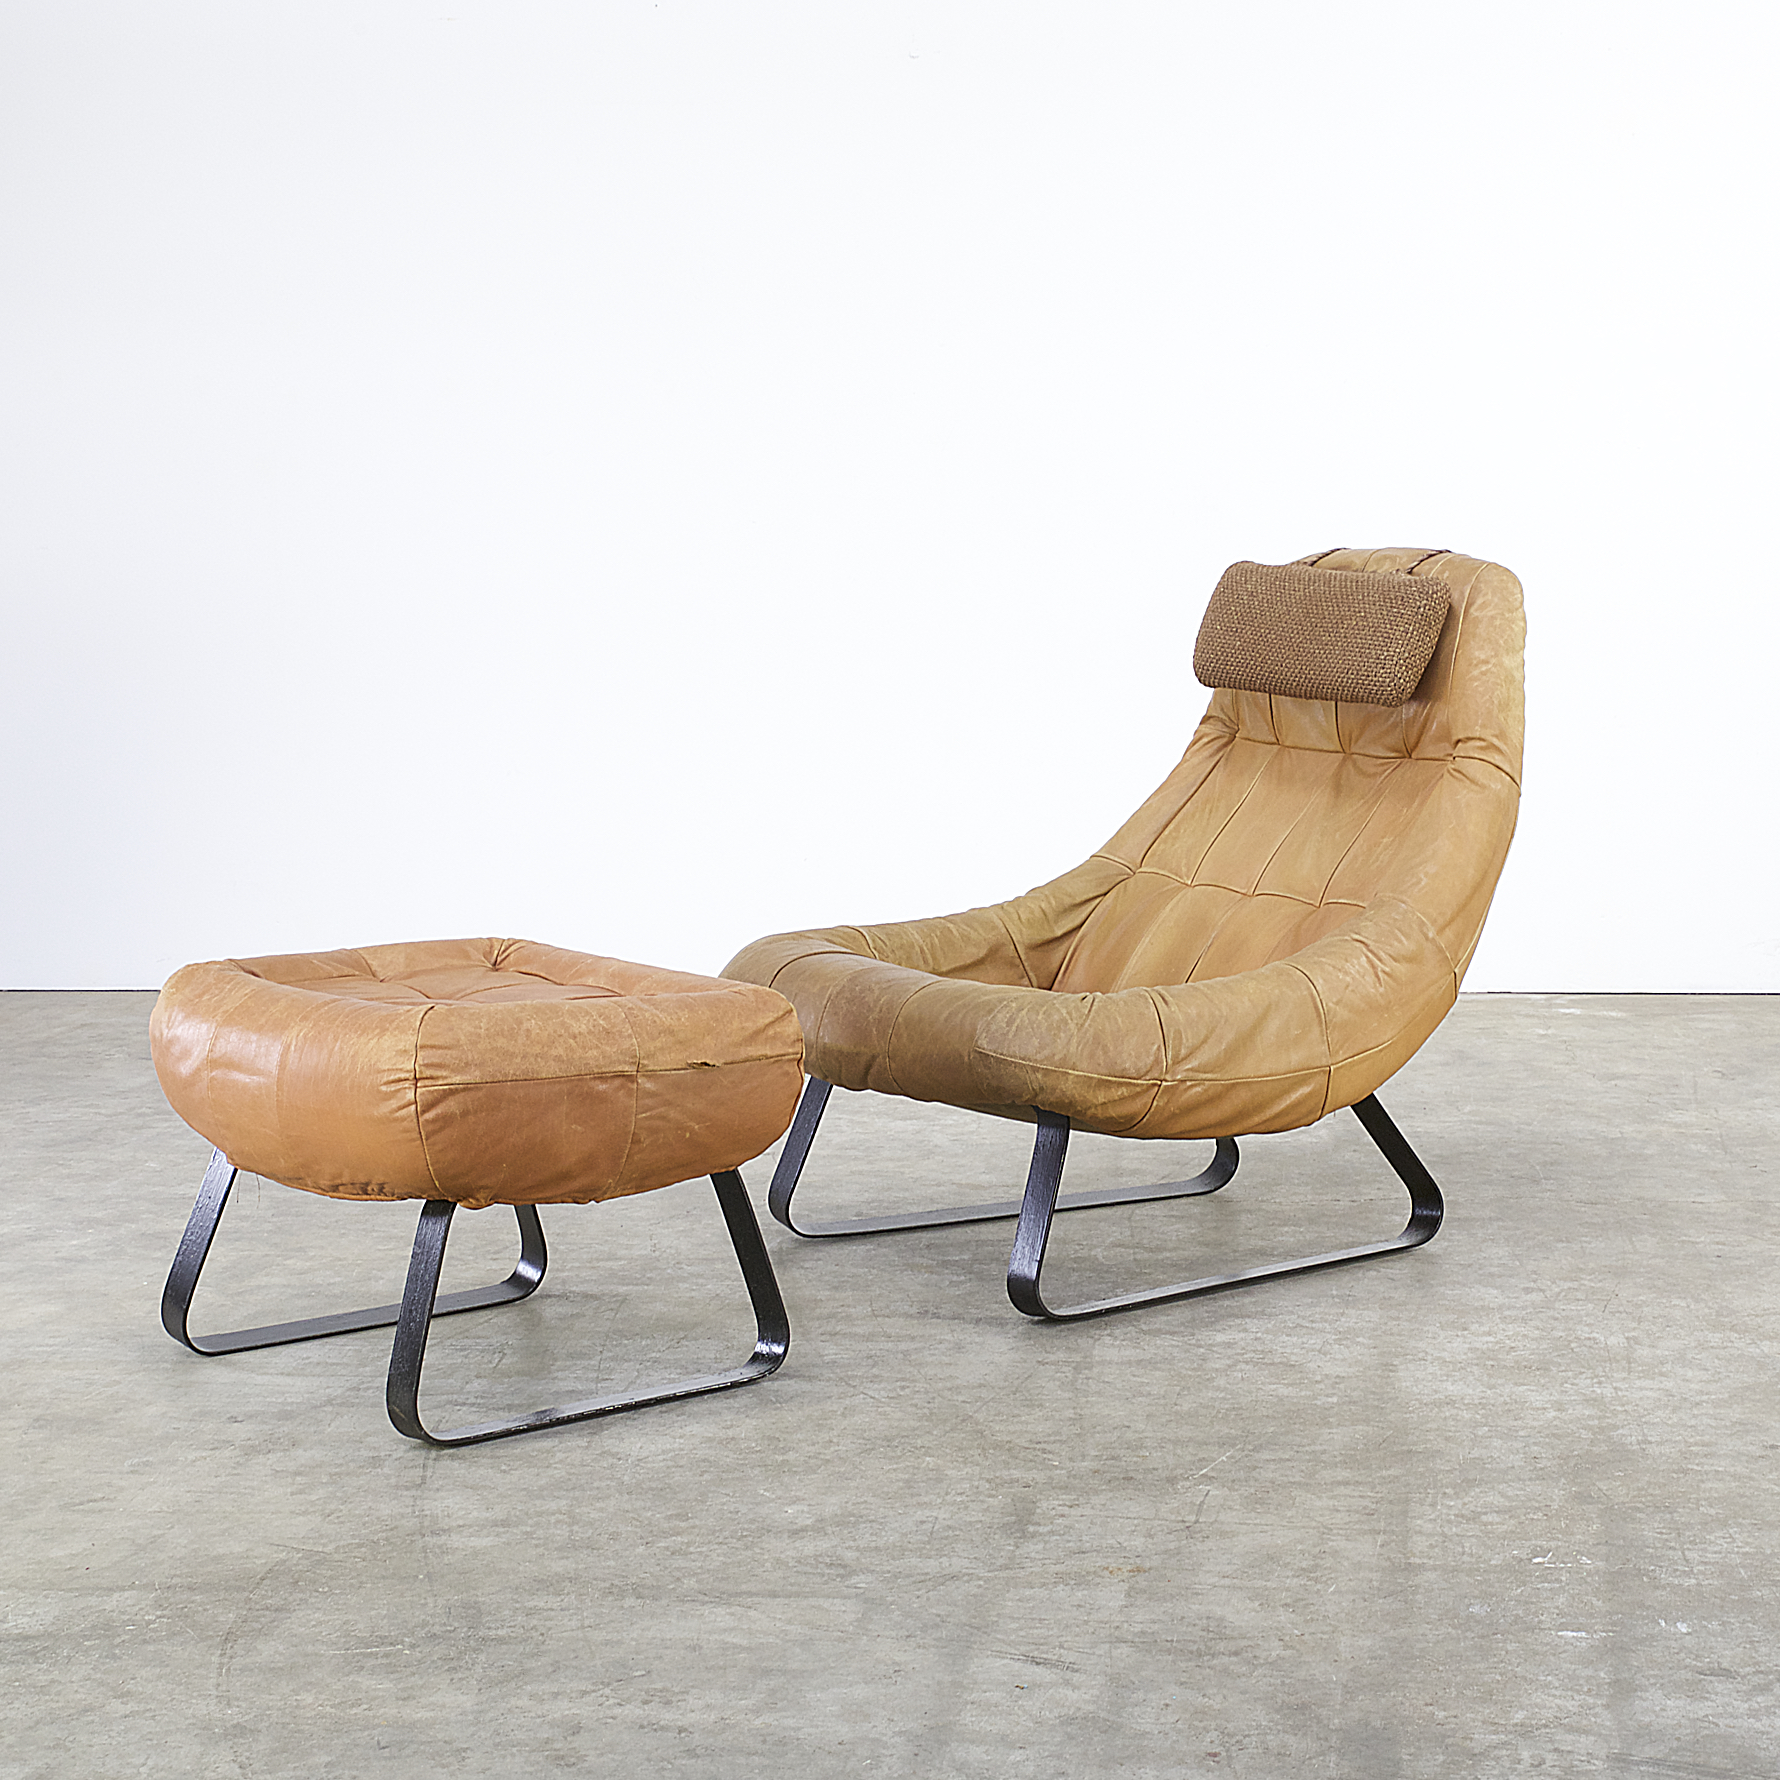 60s percival lafer earth chair collection fauteuil. Black Bedroom Furniture Sets. Home Design Ideas